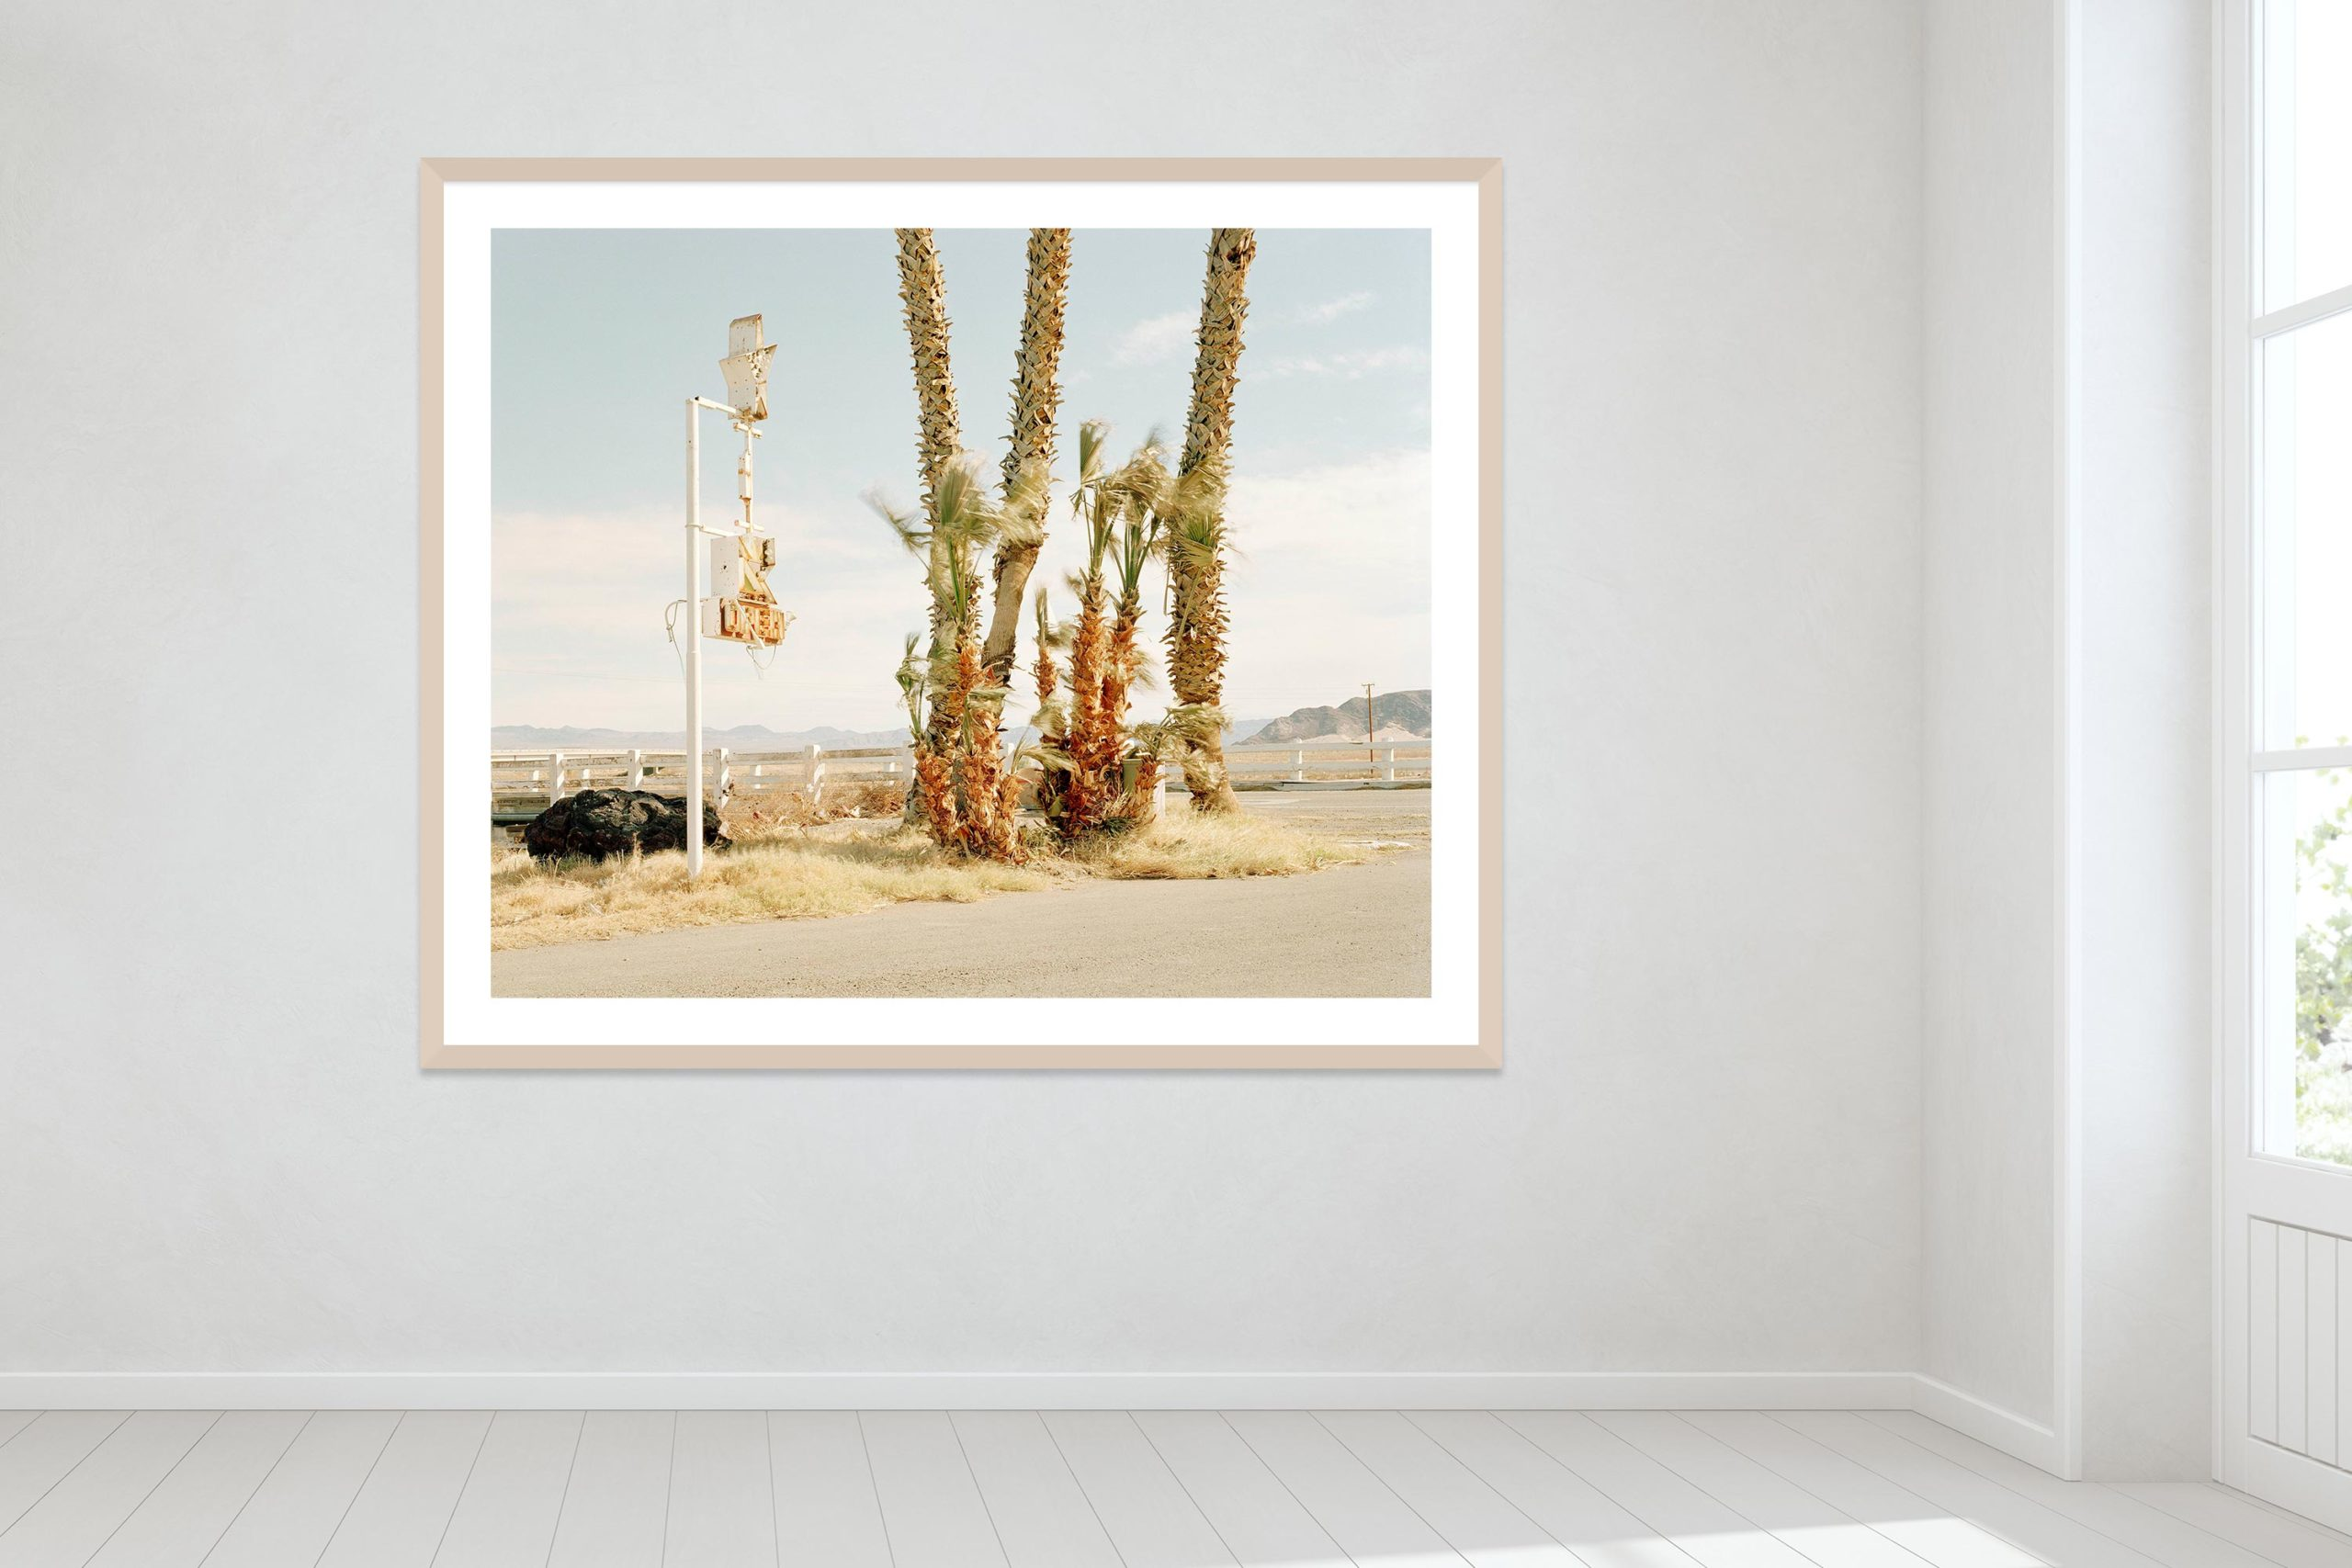 Nothing Out There - Timber Frame - Oh Mojave Collection - Fine Art Photography by Toby Dixon